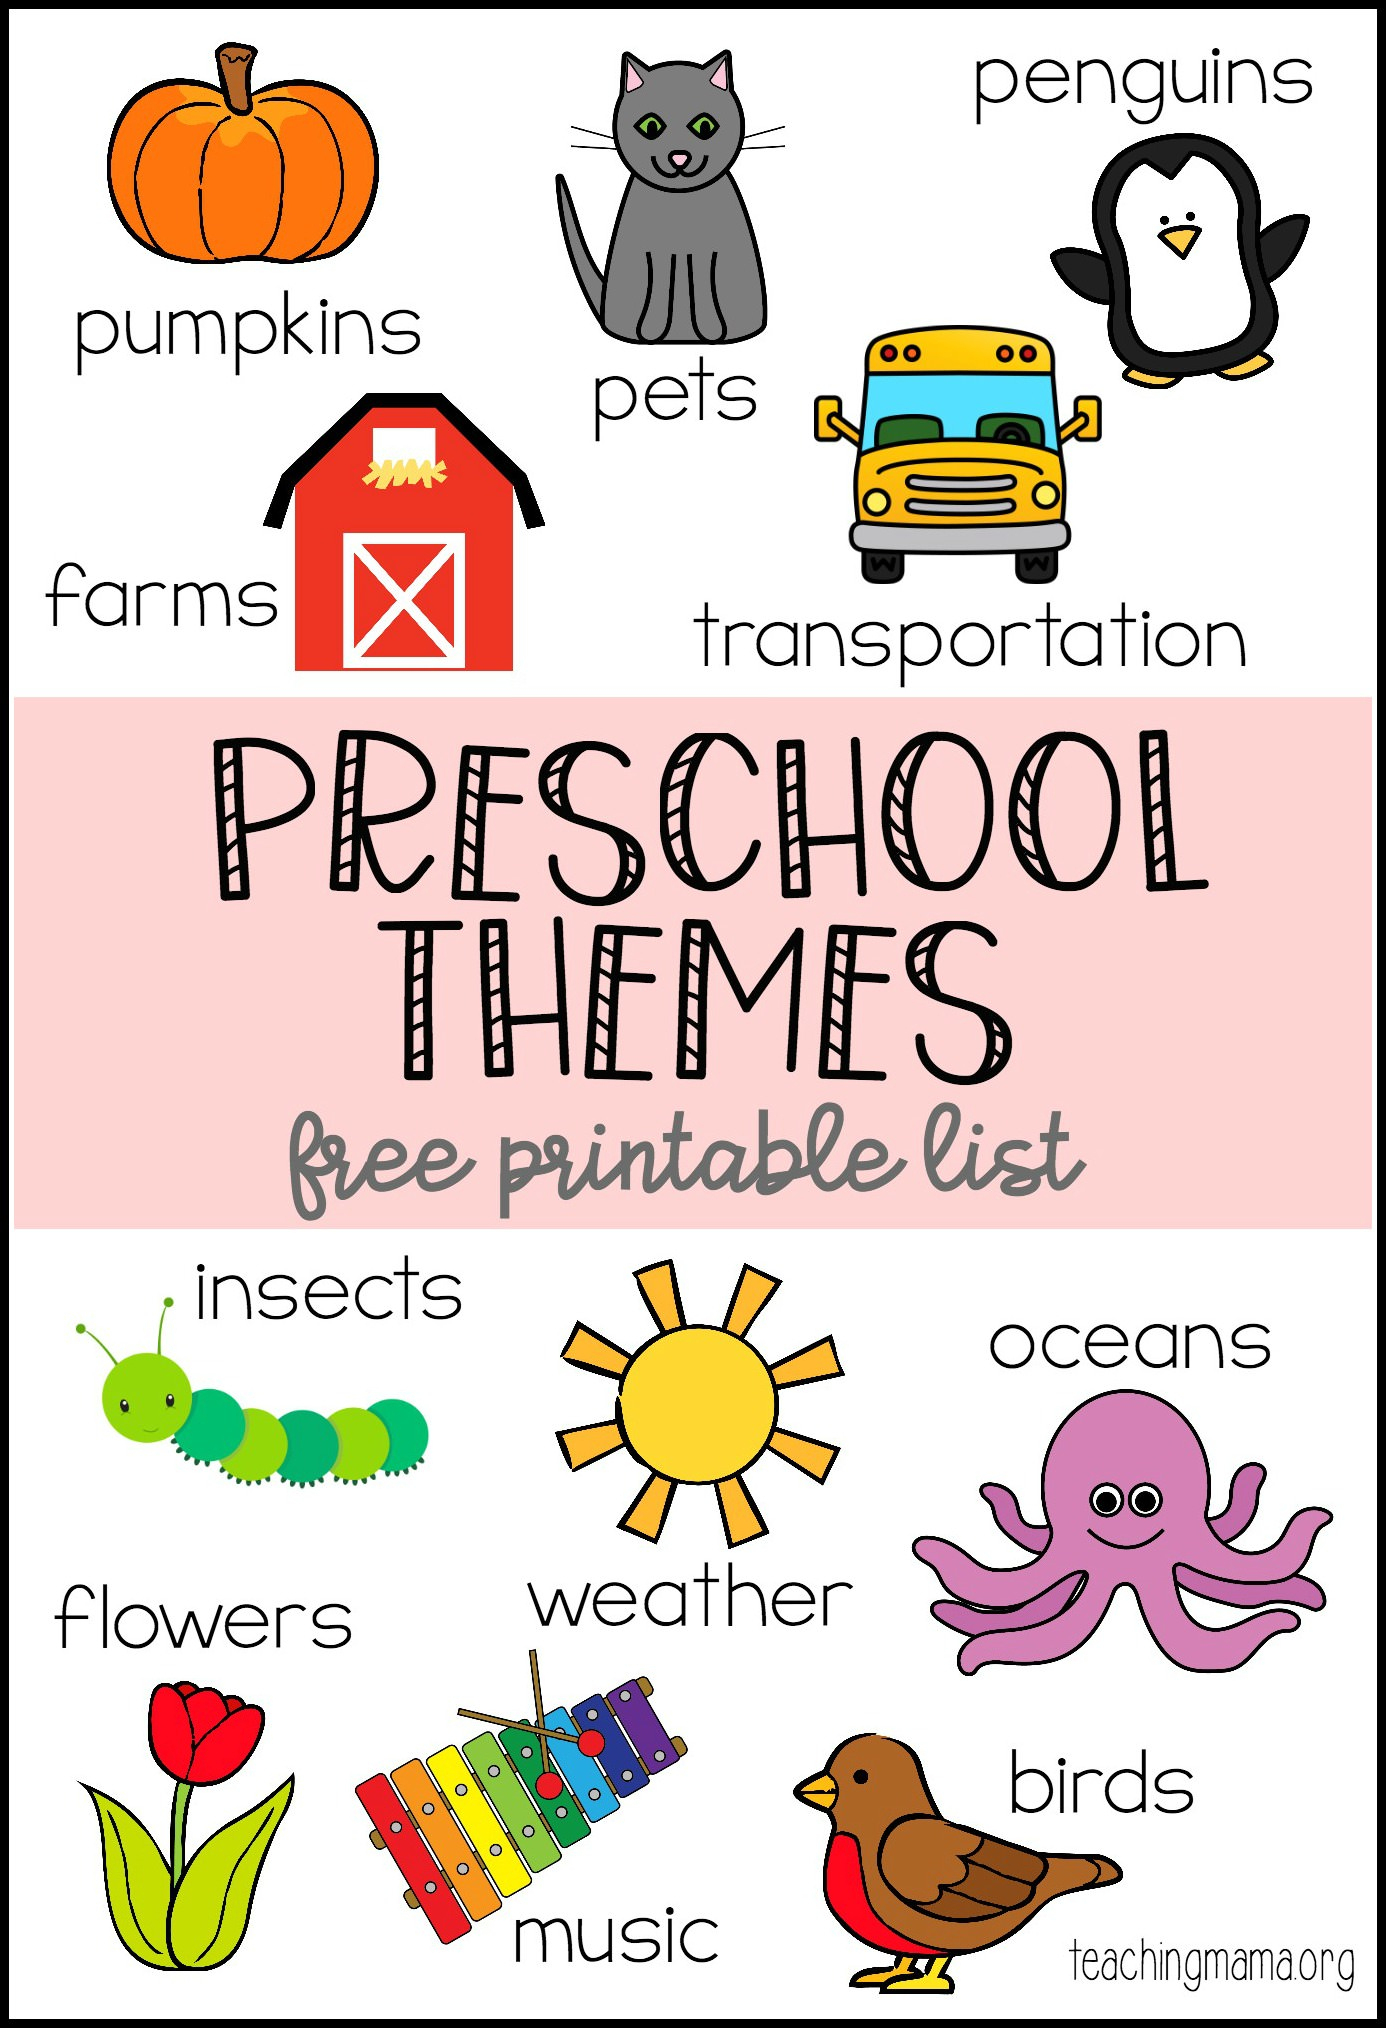 Preschool Themes Printable - Free Printable Picture Schedule For Preschool